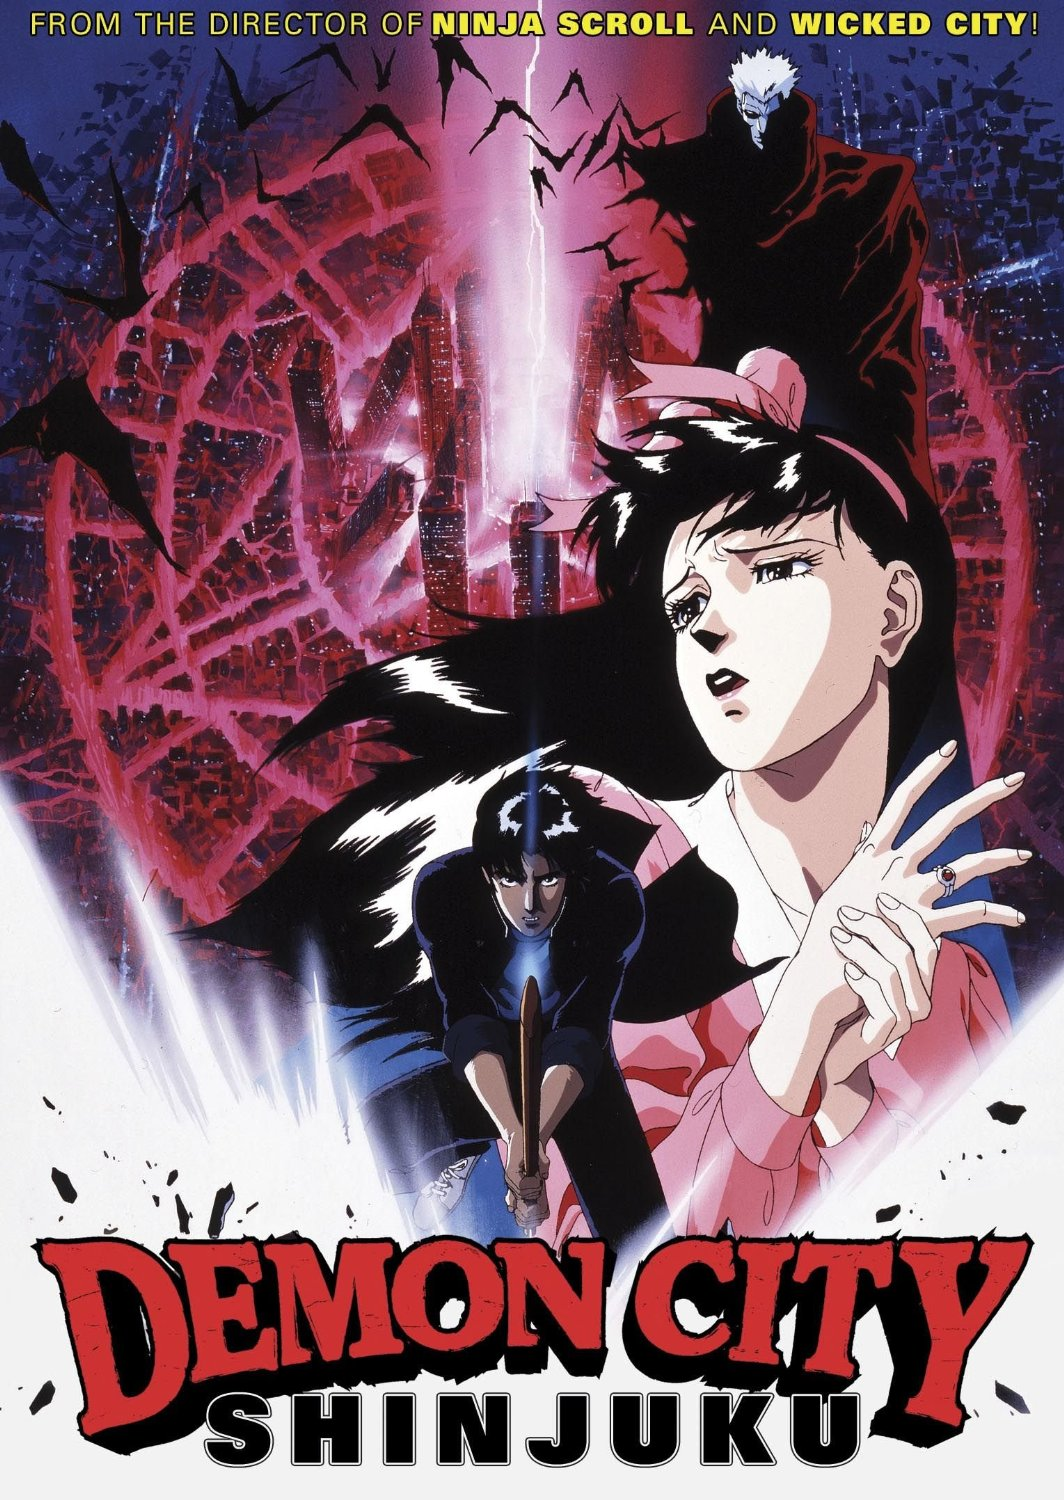 demon hentai movies list